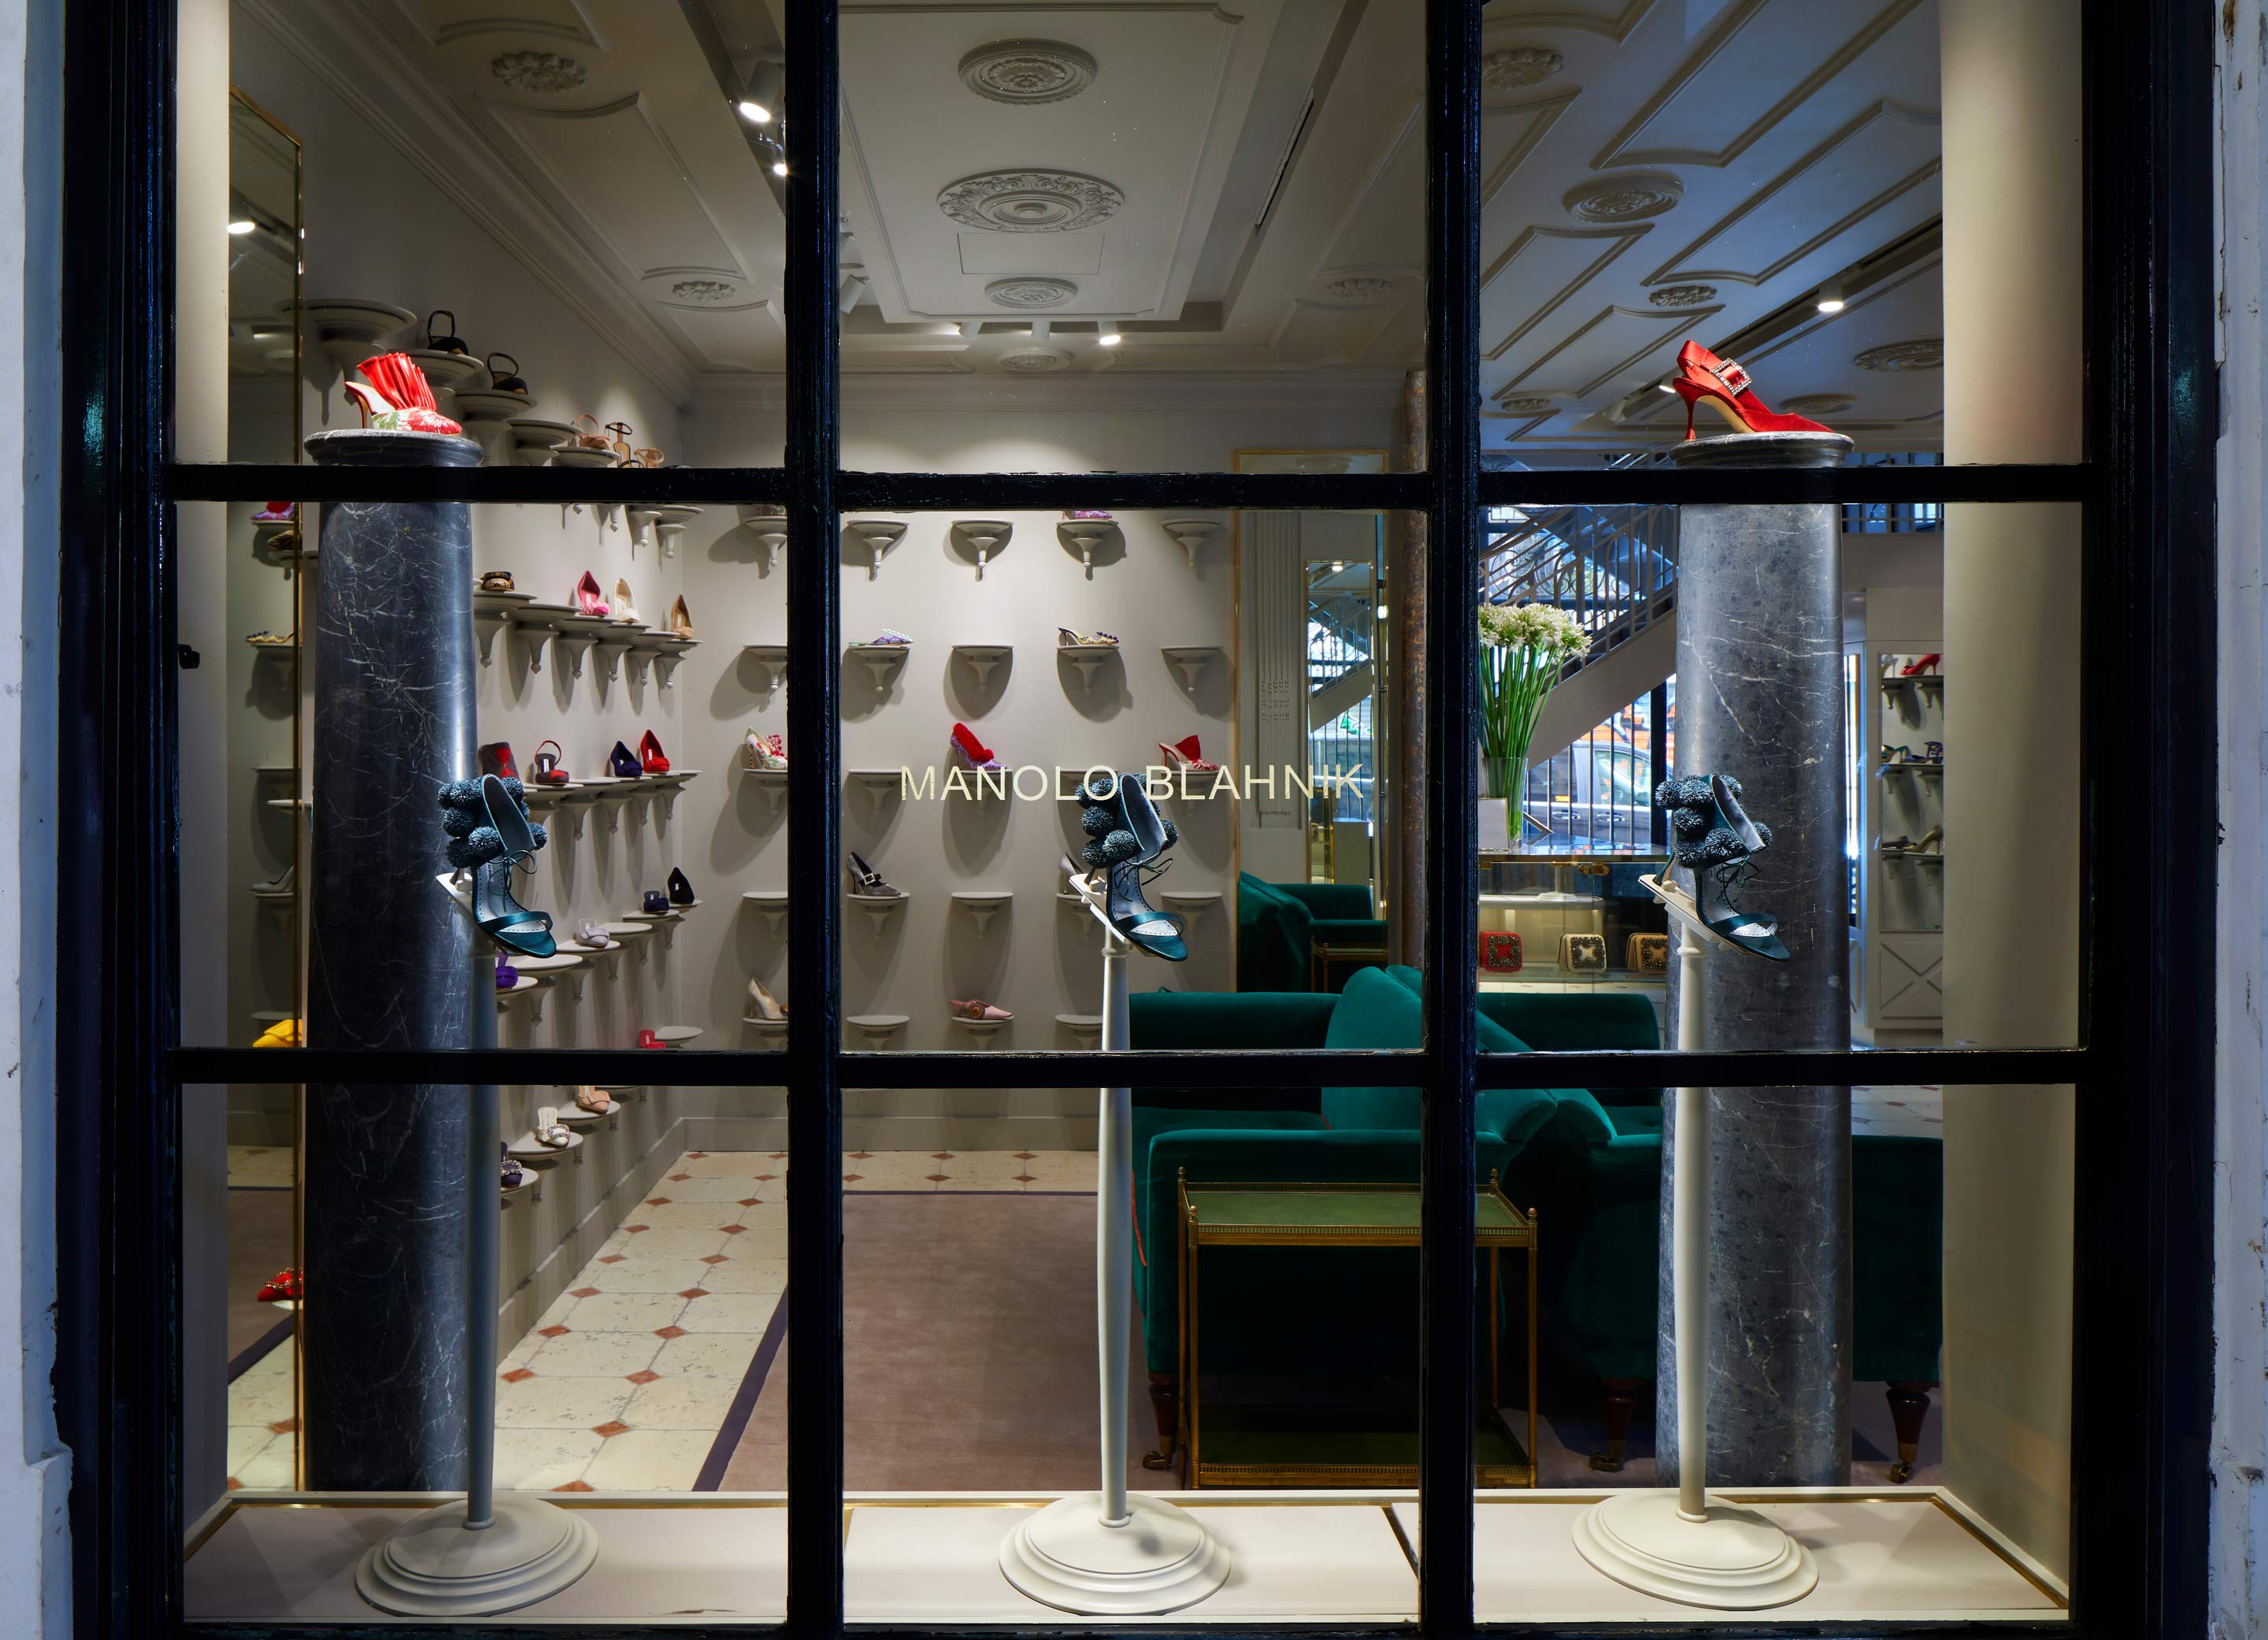 The Manolo Blahnik retail store @ Palais Royal, Paris